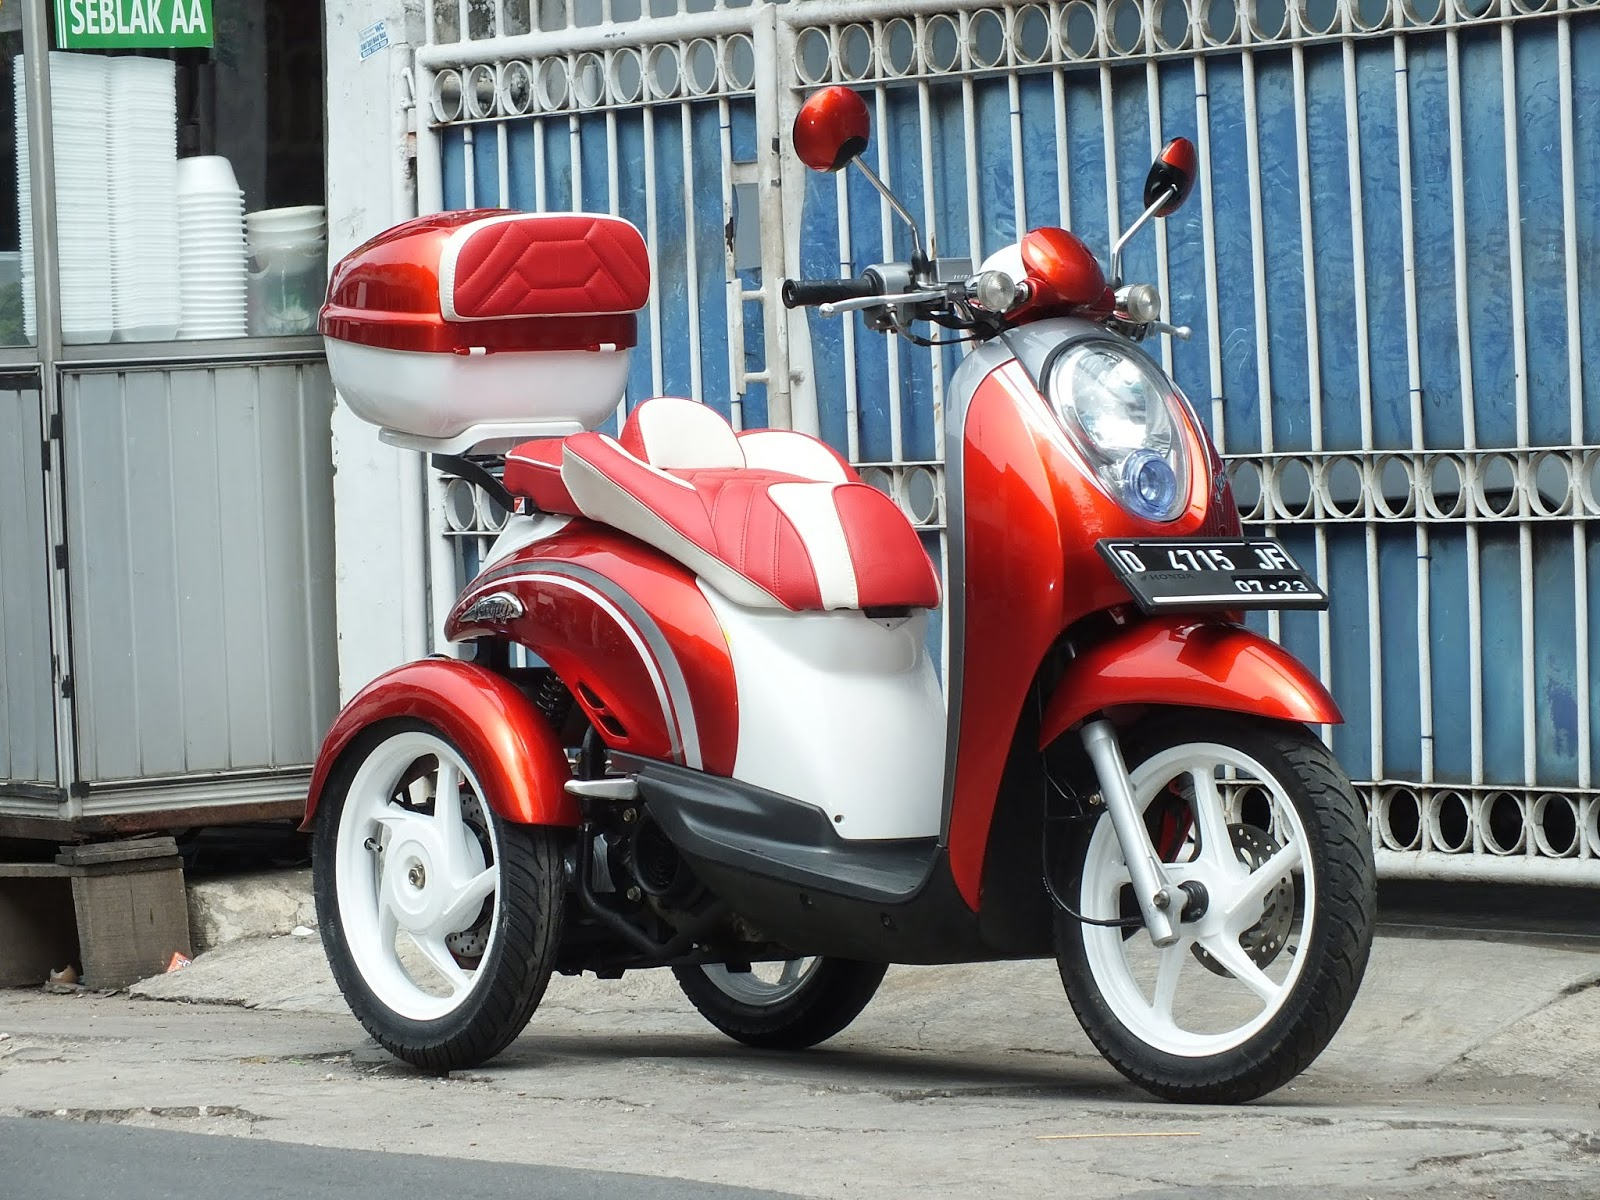 Modifikasi JOK MOTOR